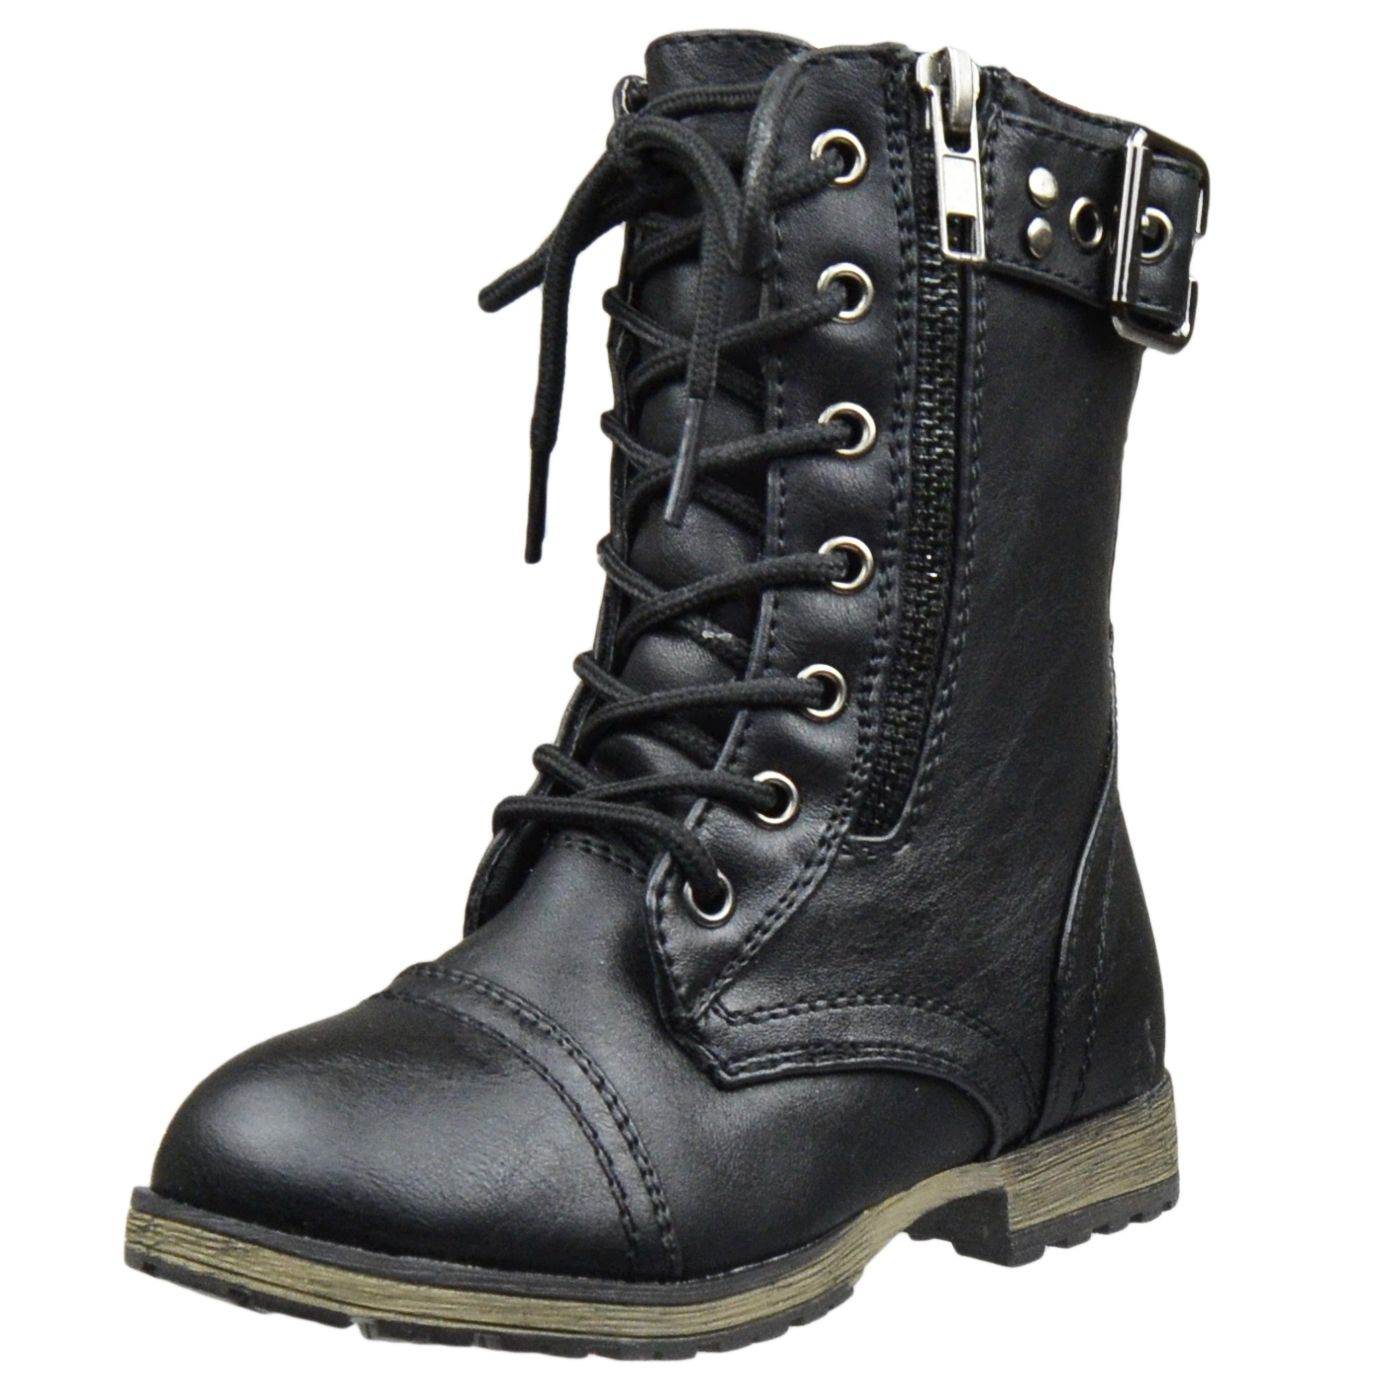 Black Combat Boots Girls | Fashion Boots